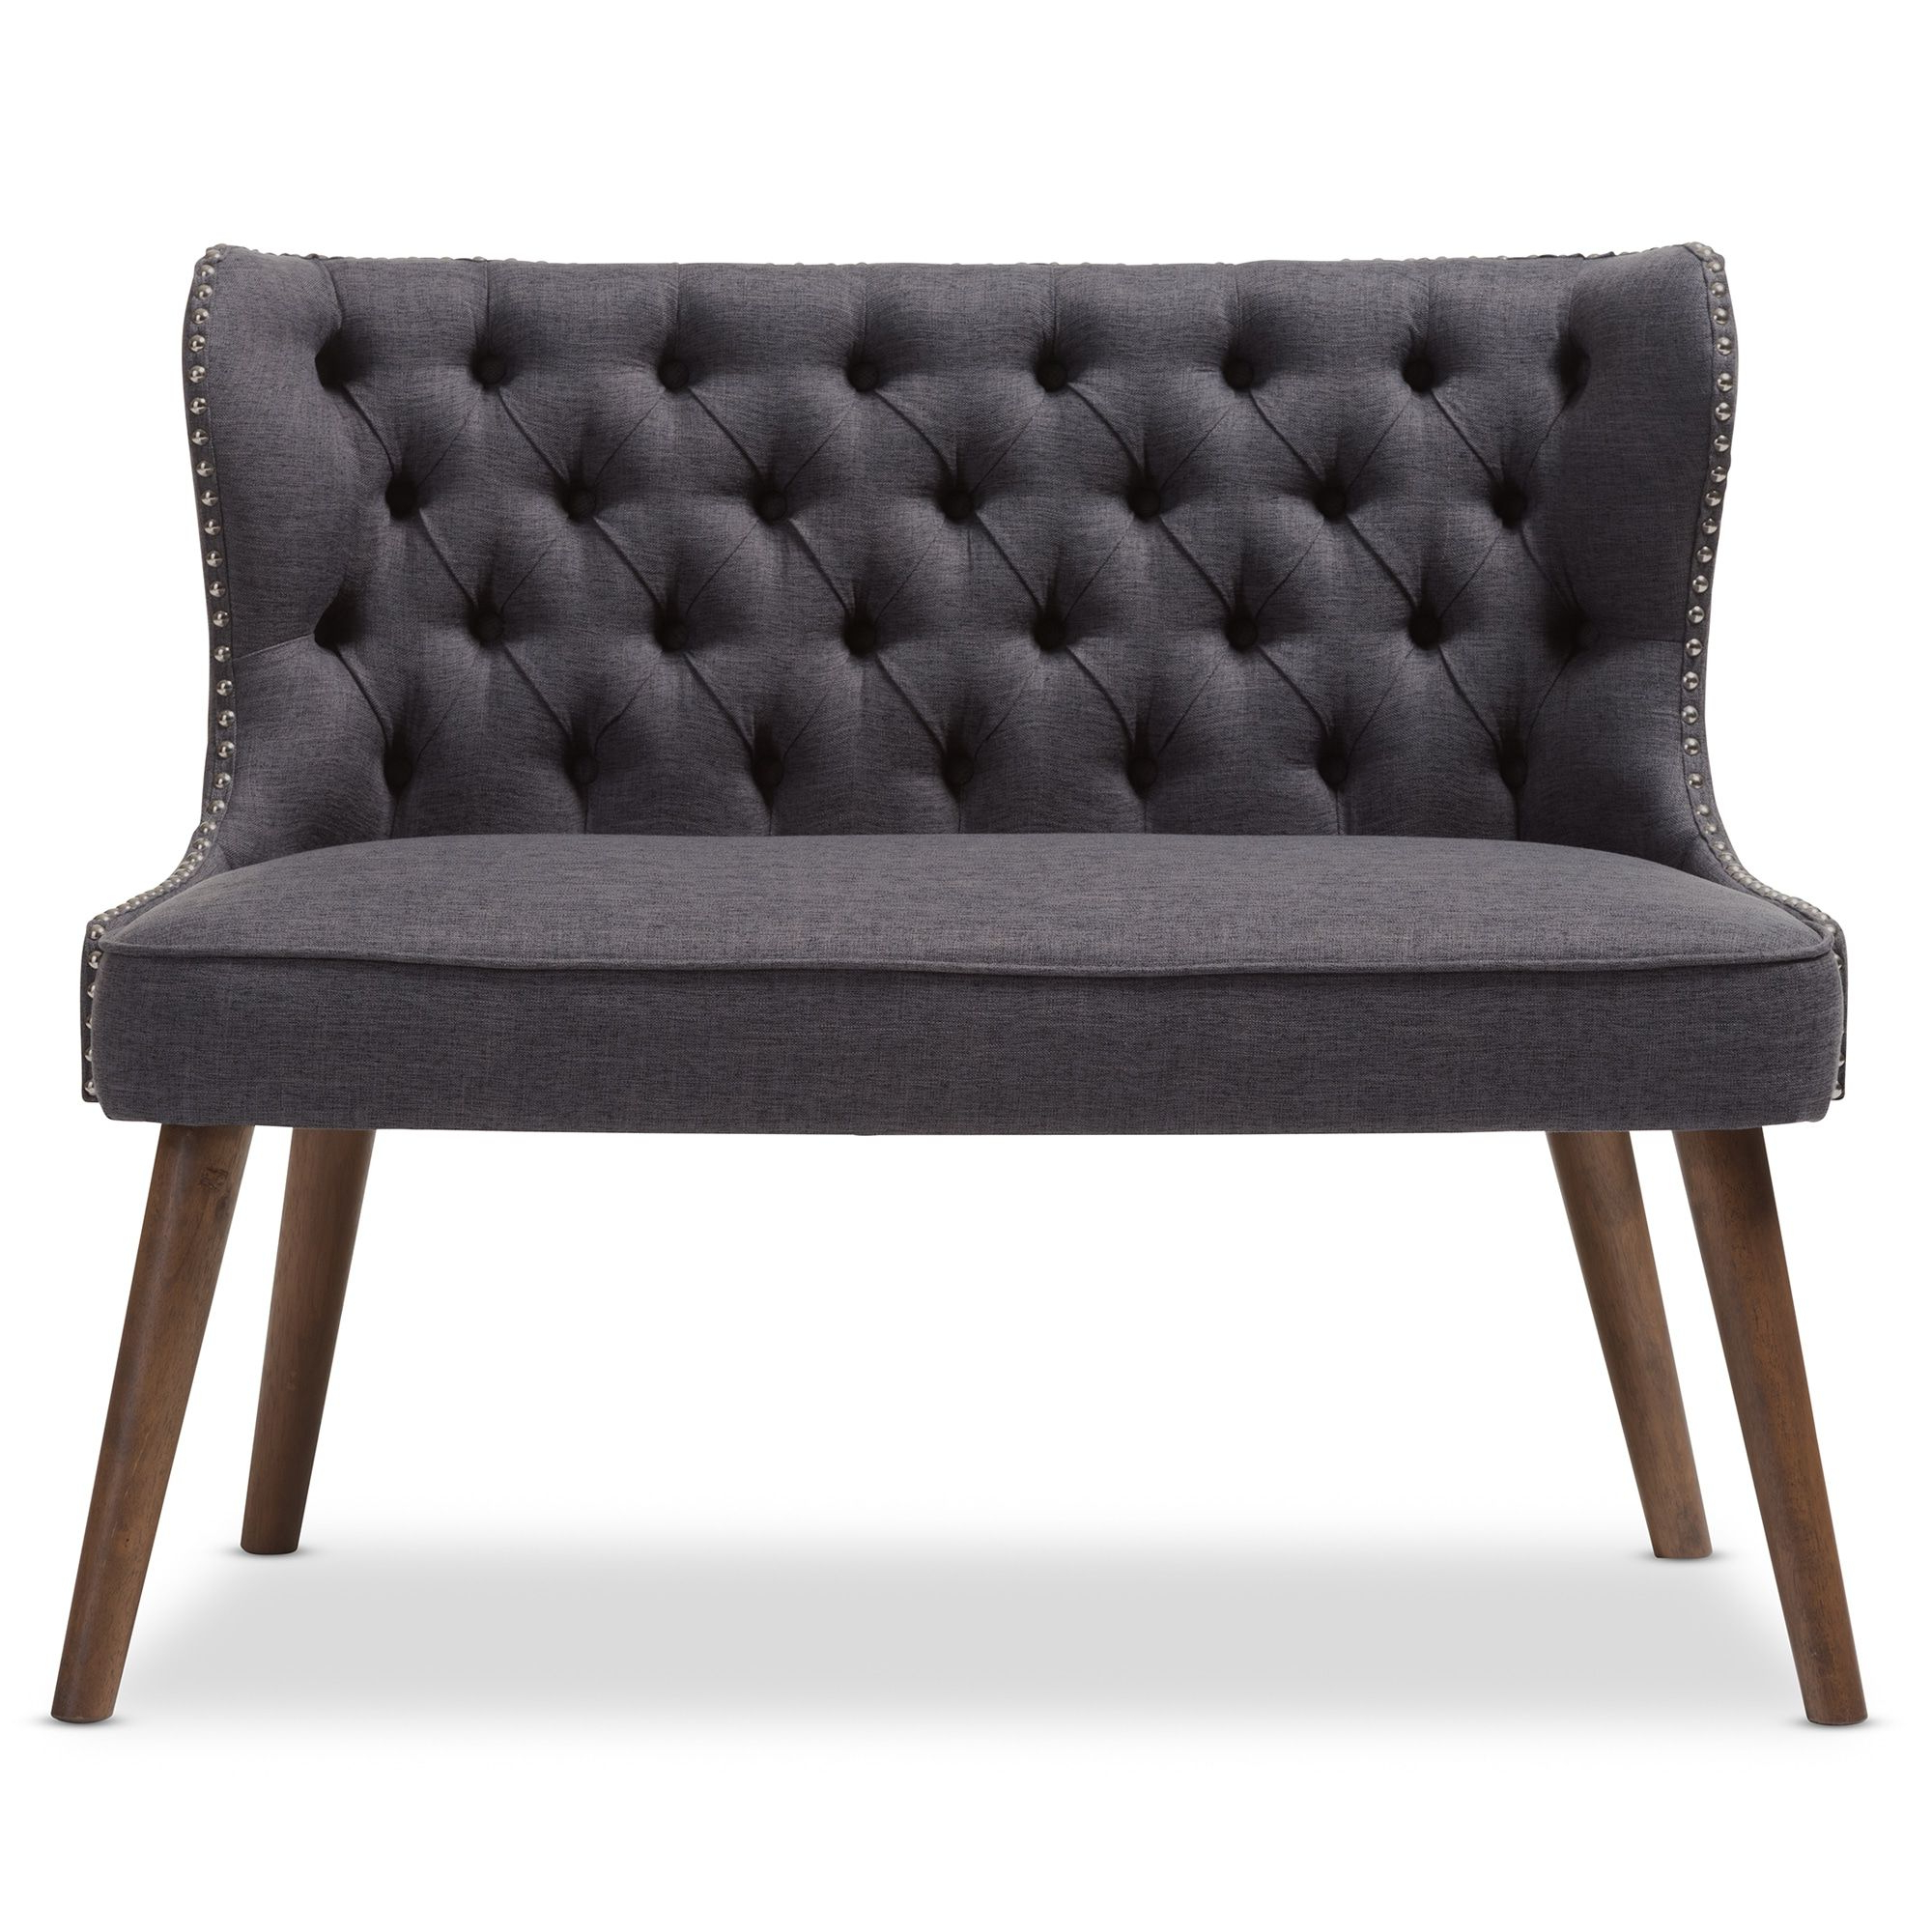 Carson Carrington Rudkobing Mid Century Modern Wood And Throughout Most Recent Scarlett Beige Sofas (View 9 of 15)